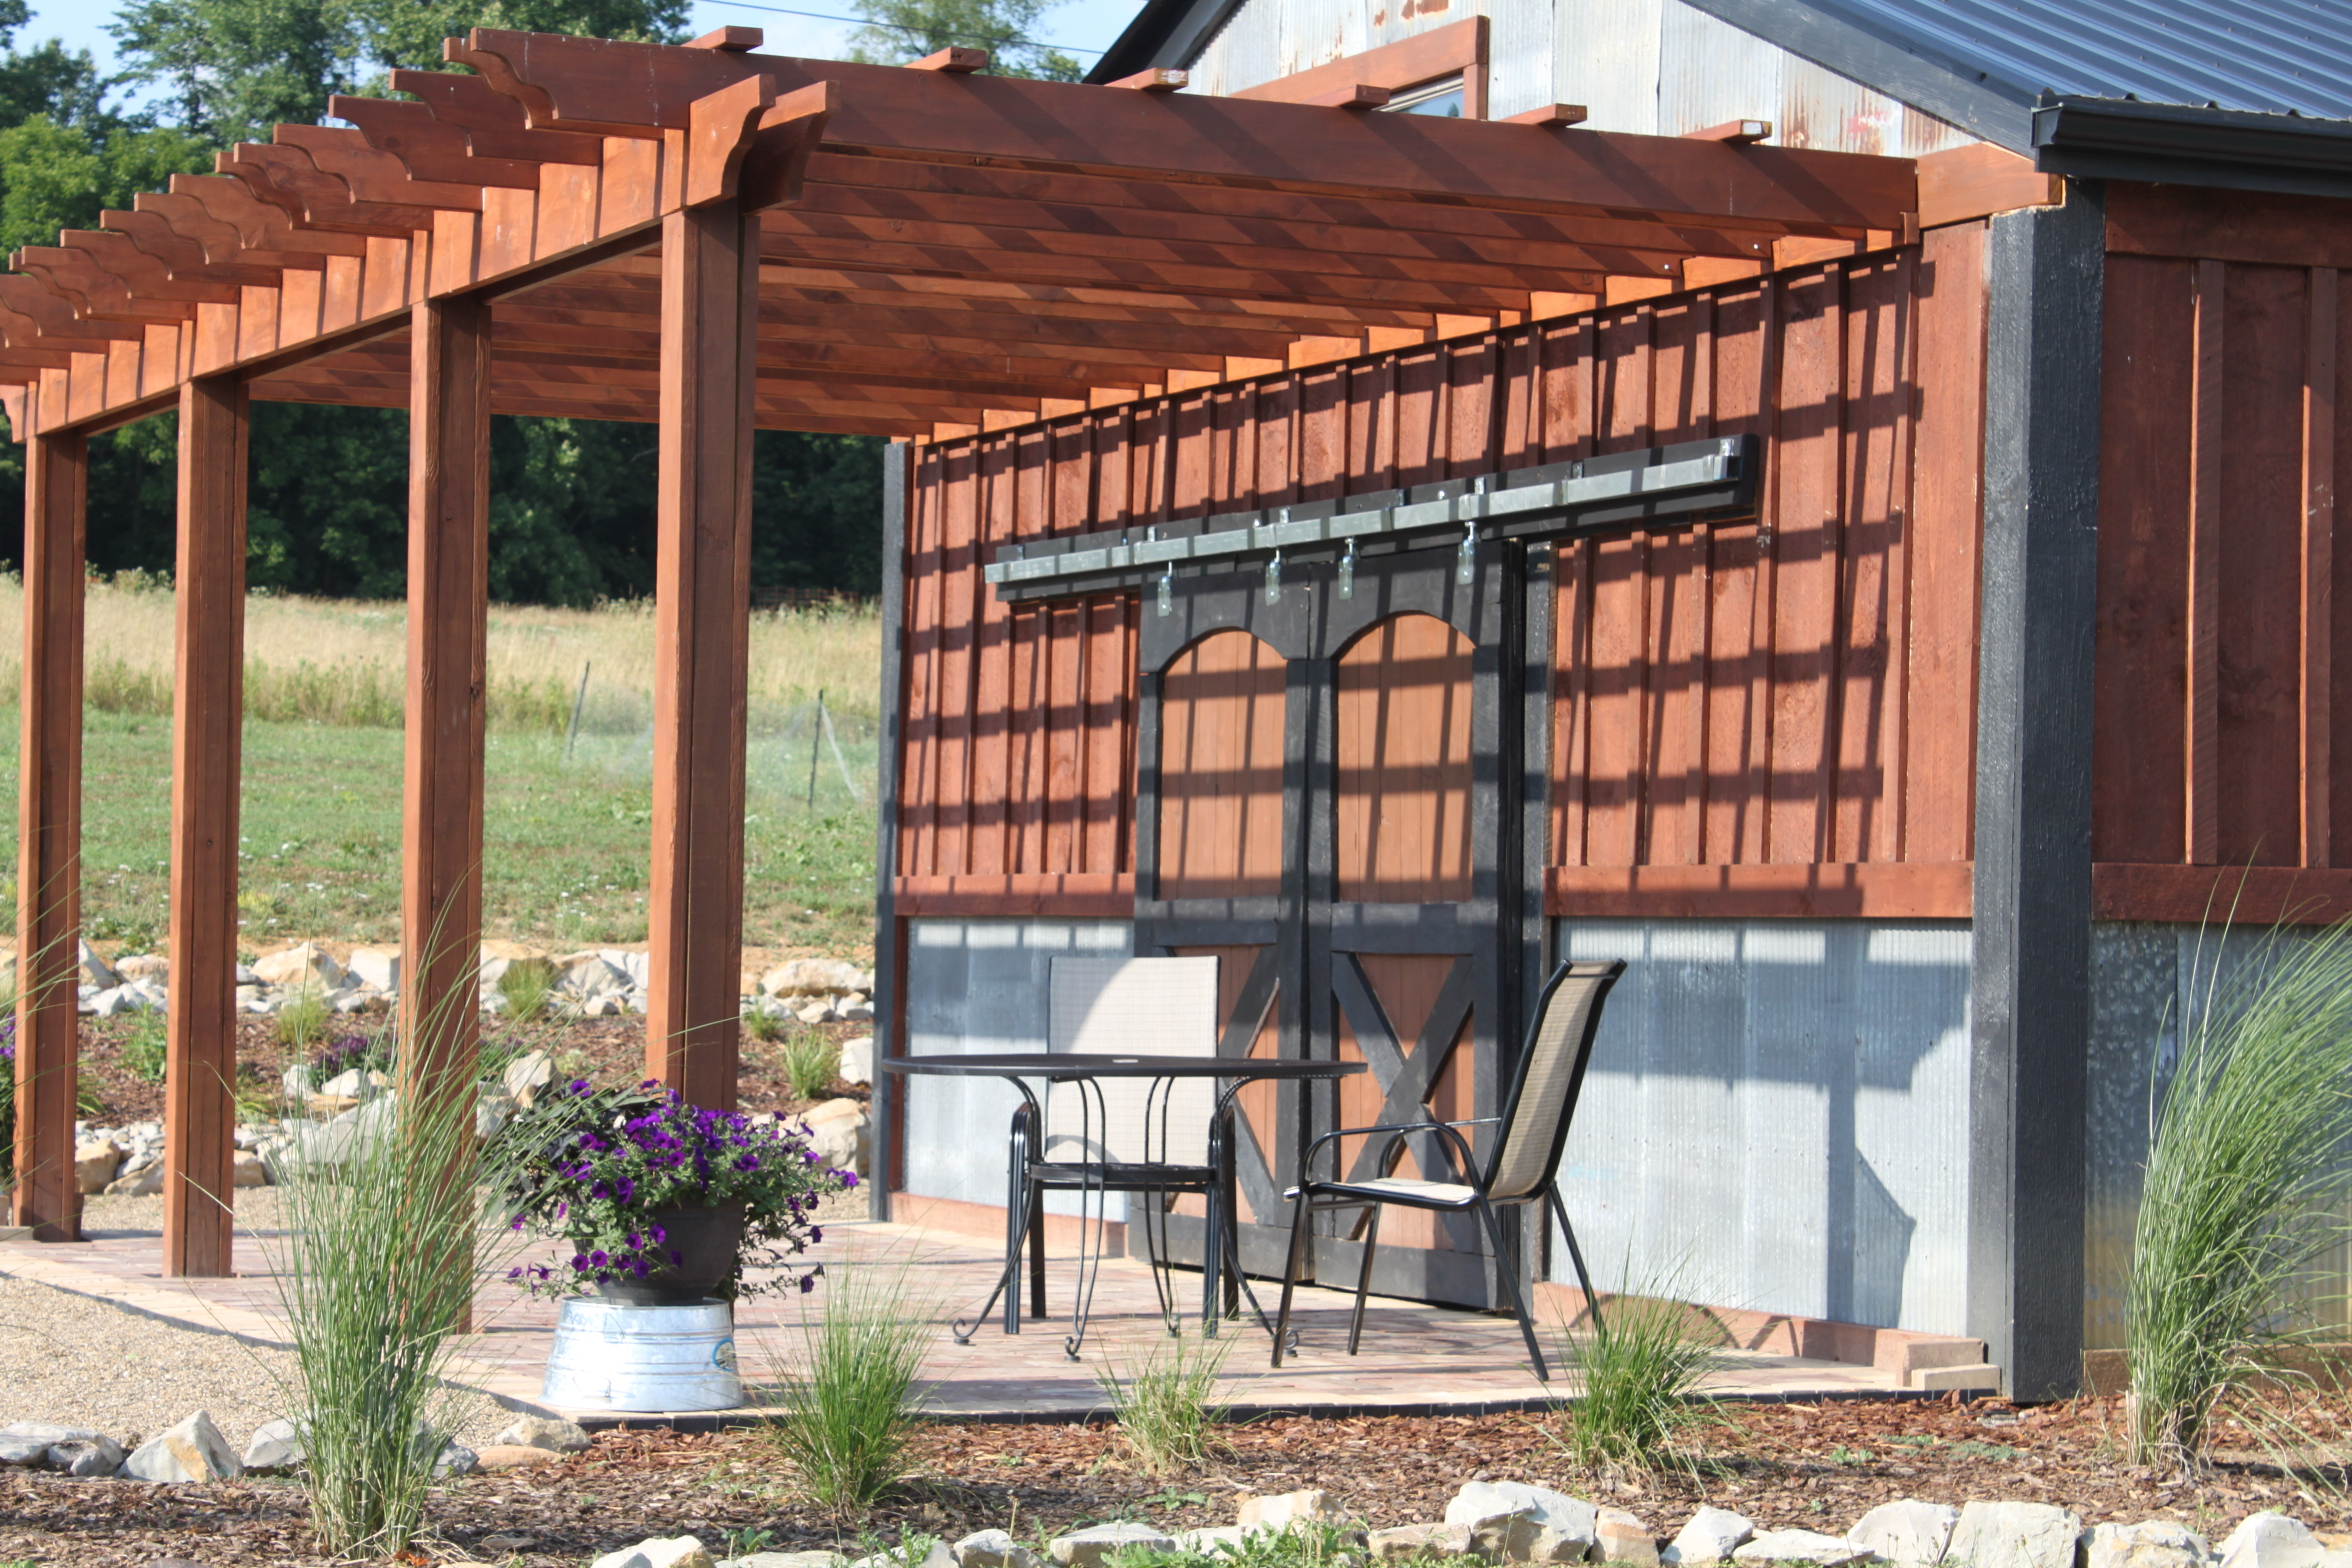 brown pergola plans with two props ideas with chair and table plus flowers for backyard decor ideas